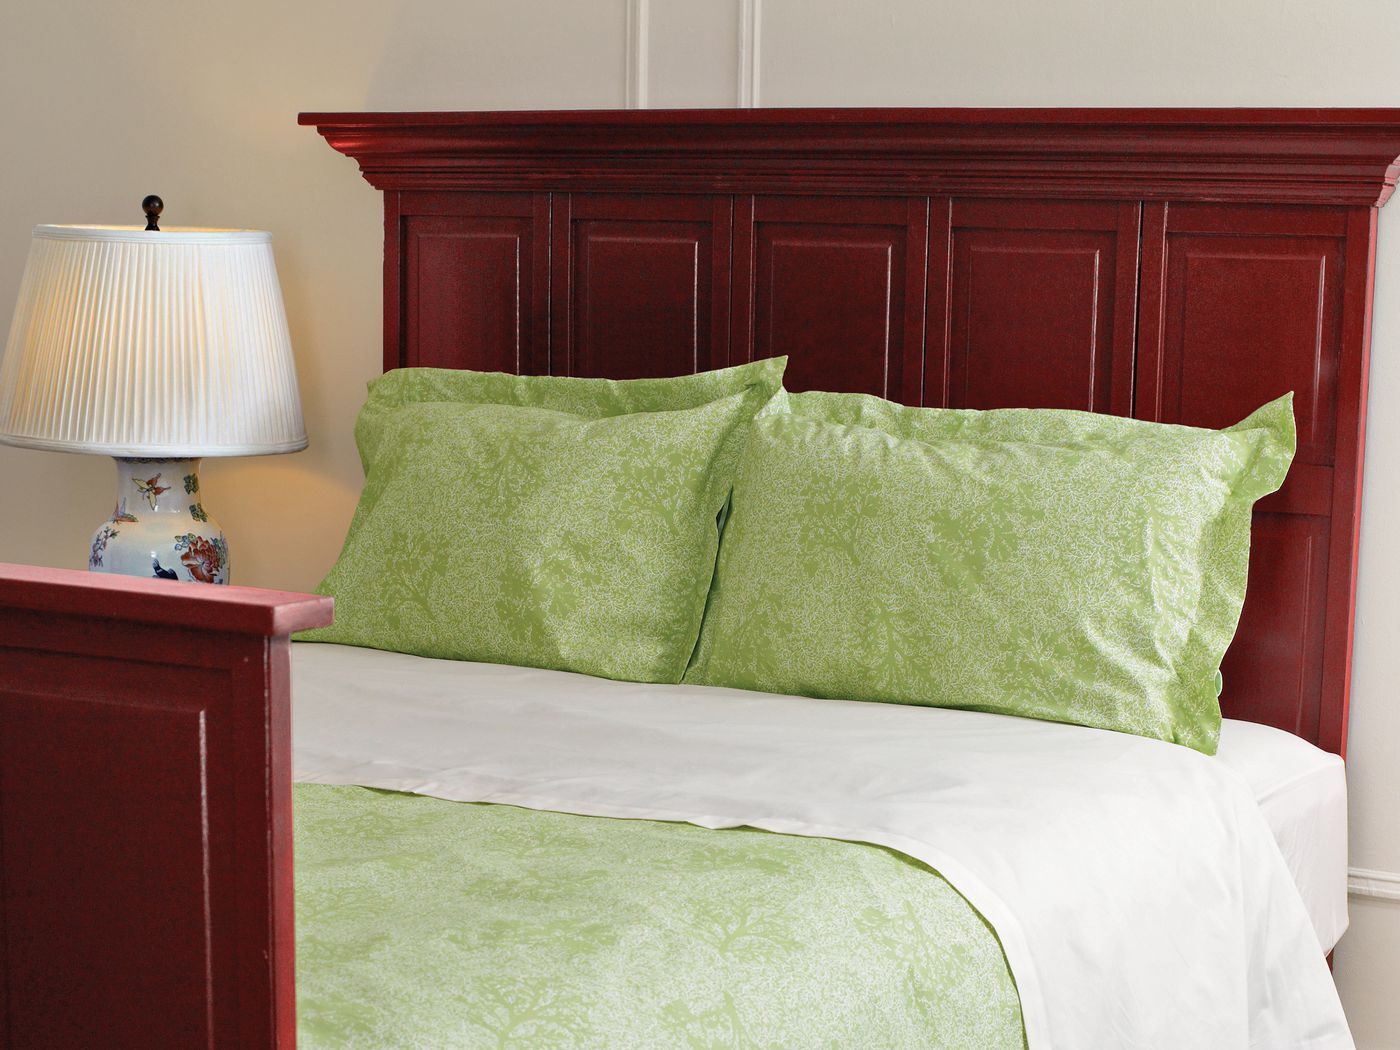 27 Ways To Build Your Own Bedroom Furniture This Old House